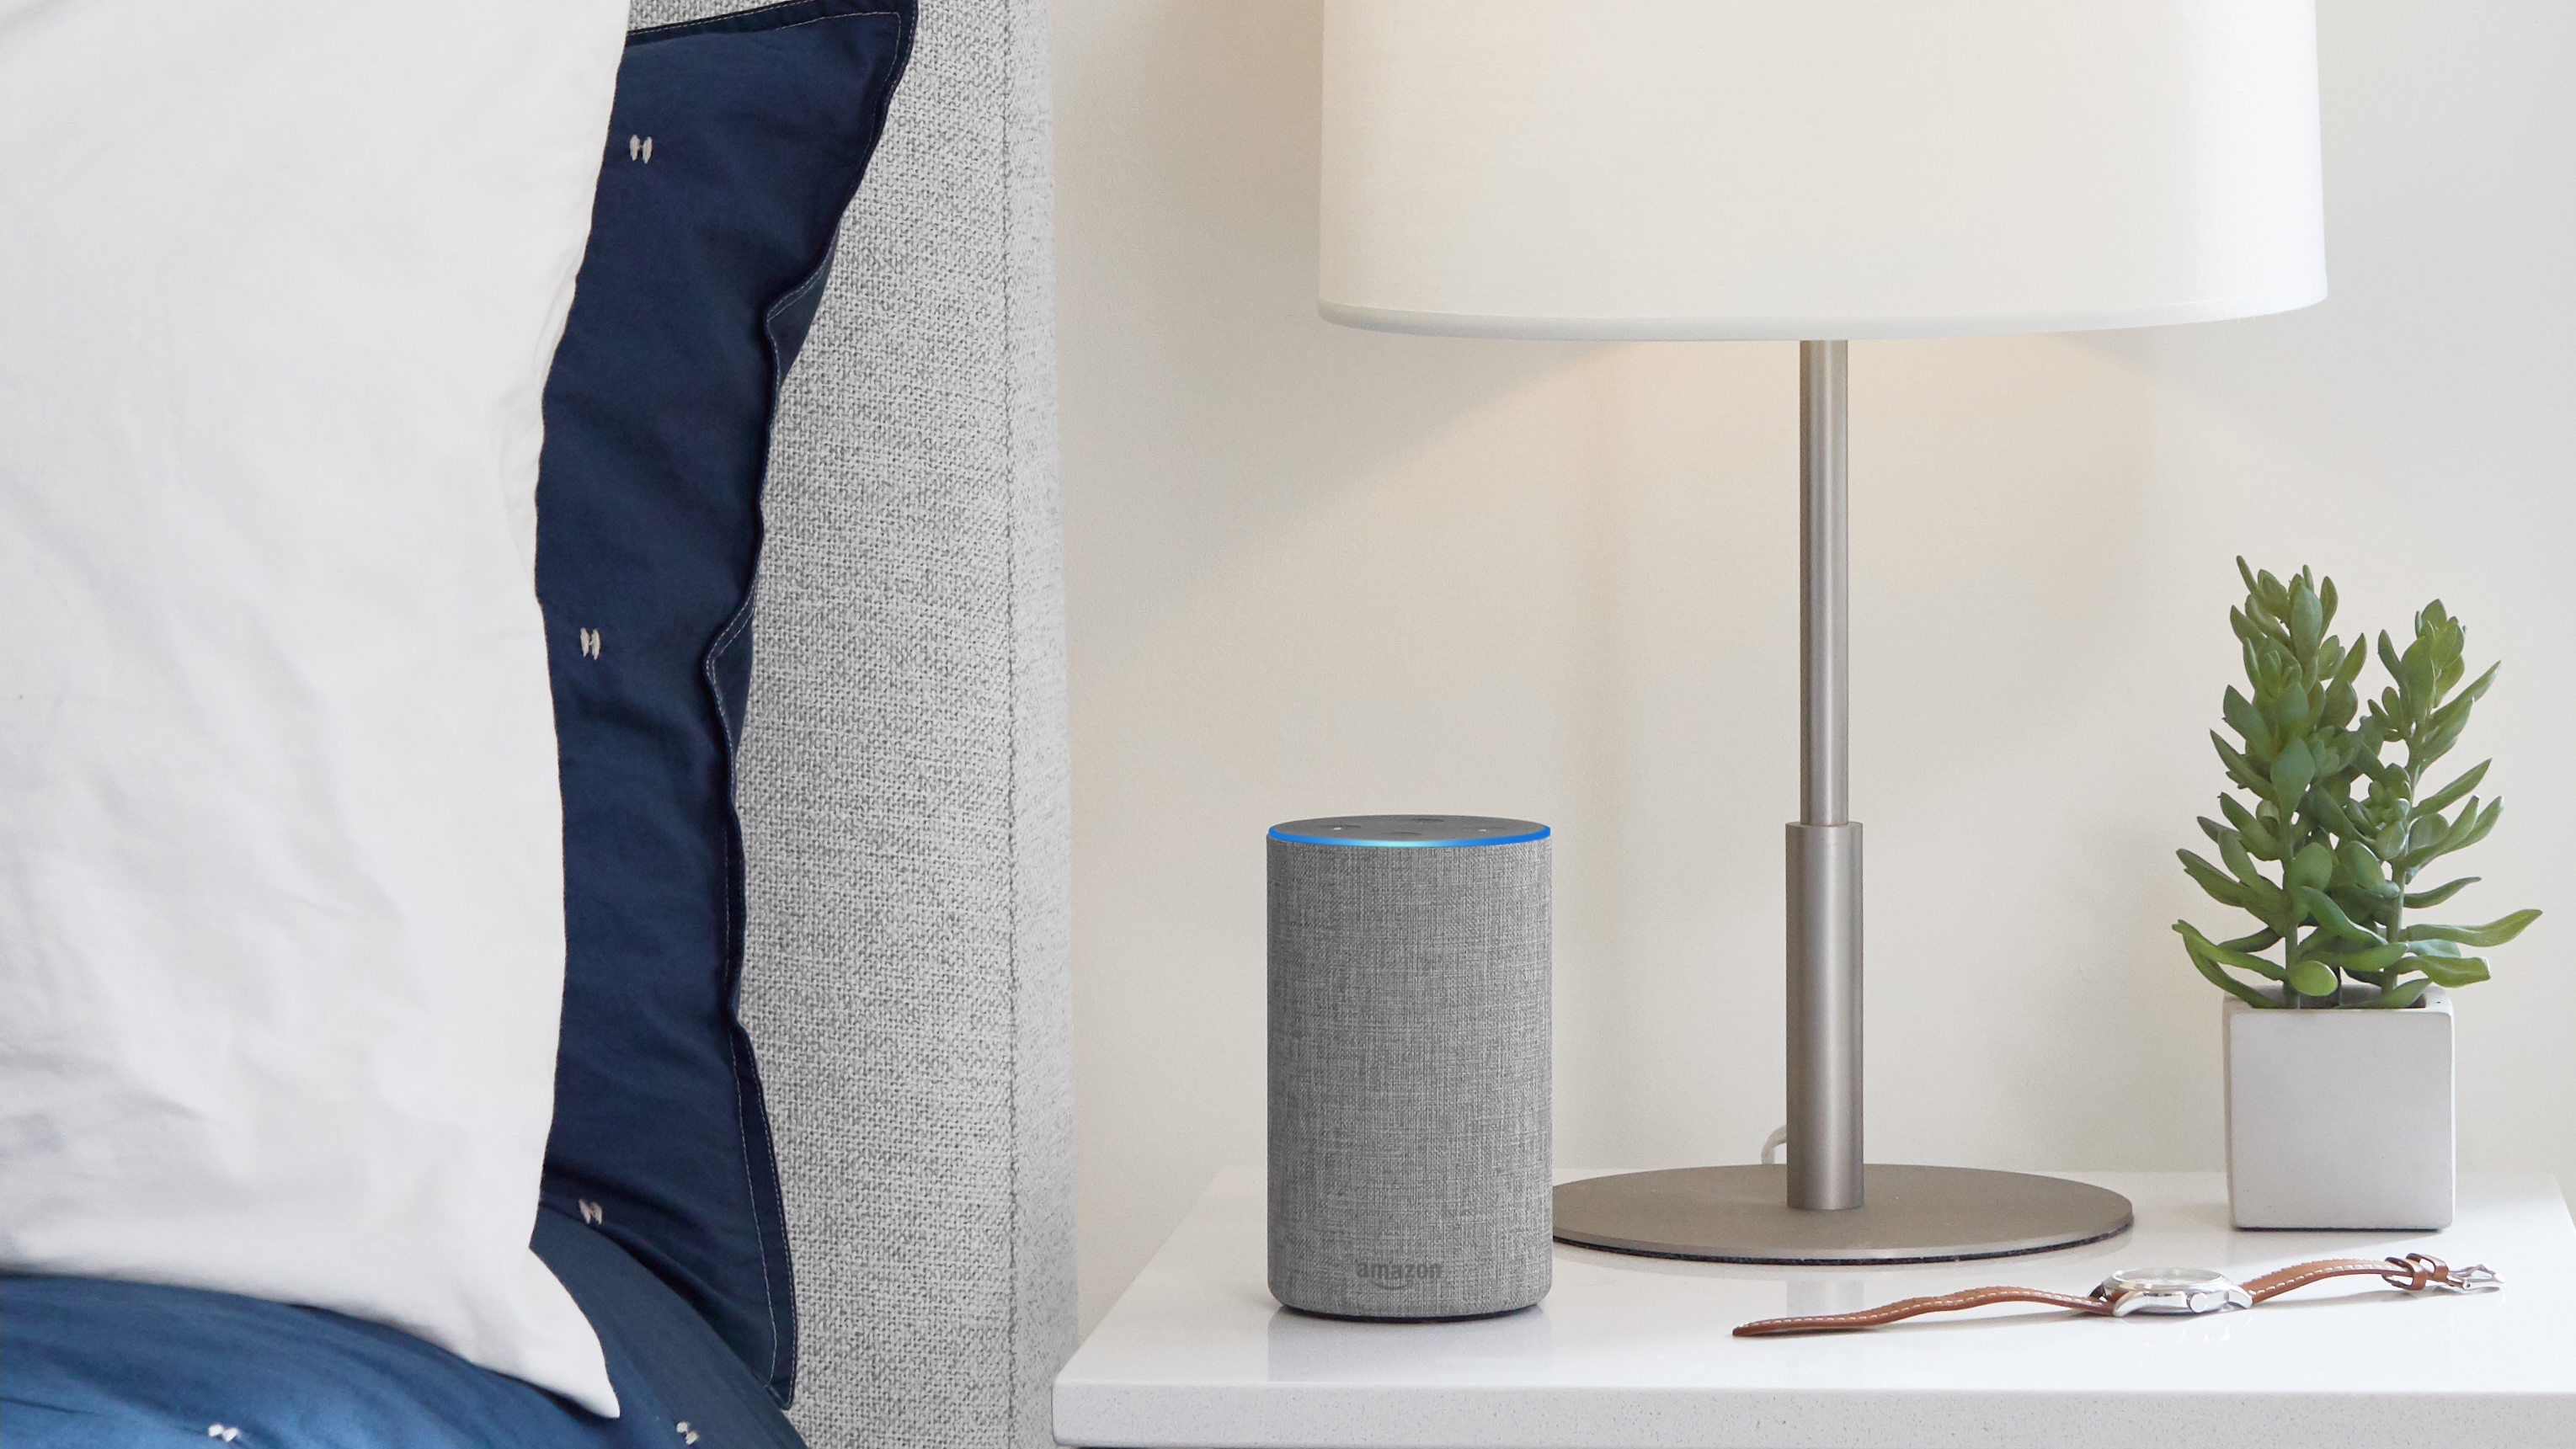 A still of the Amazon Echo smart speaker